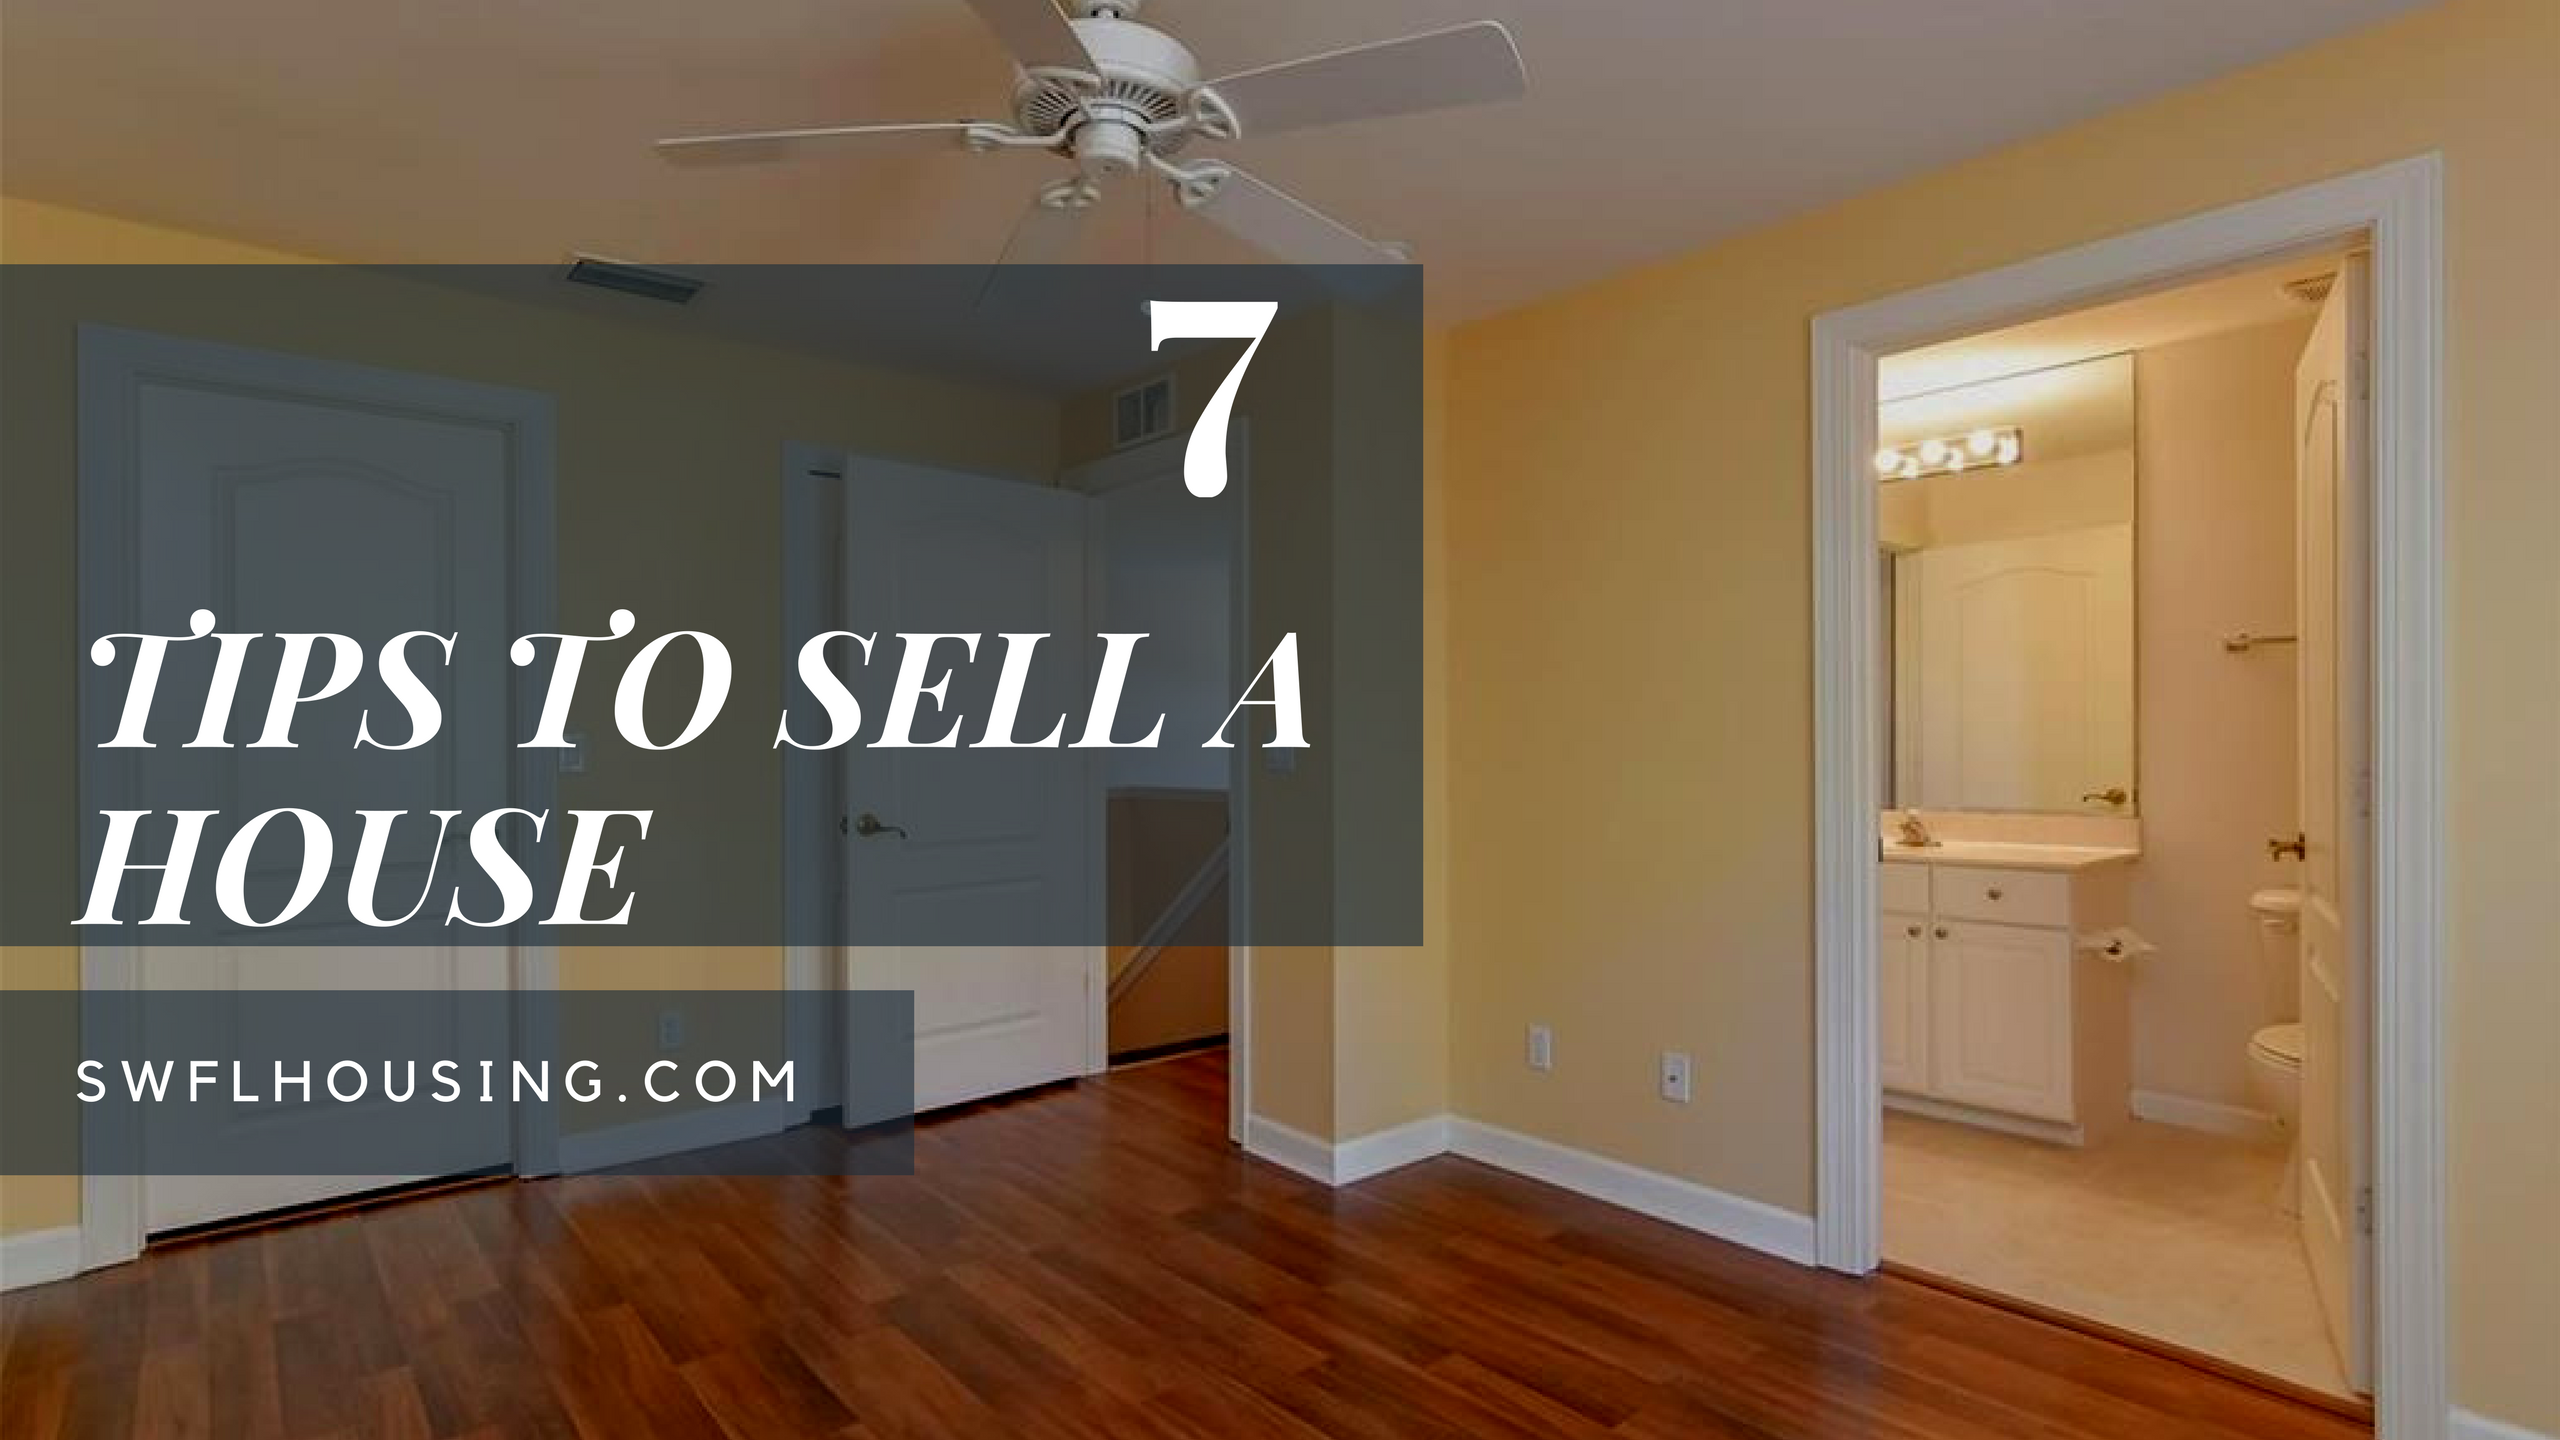 a House7 tips to selling